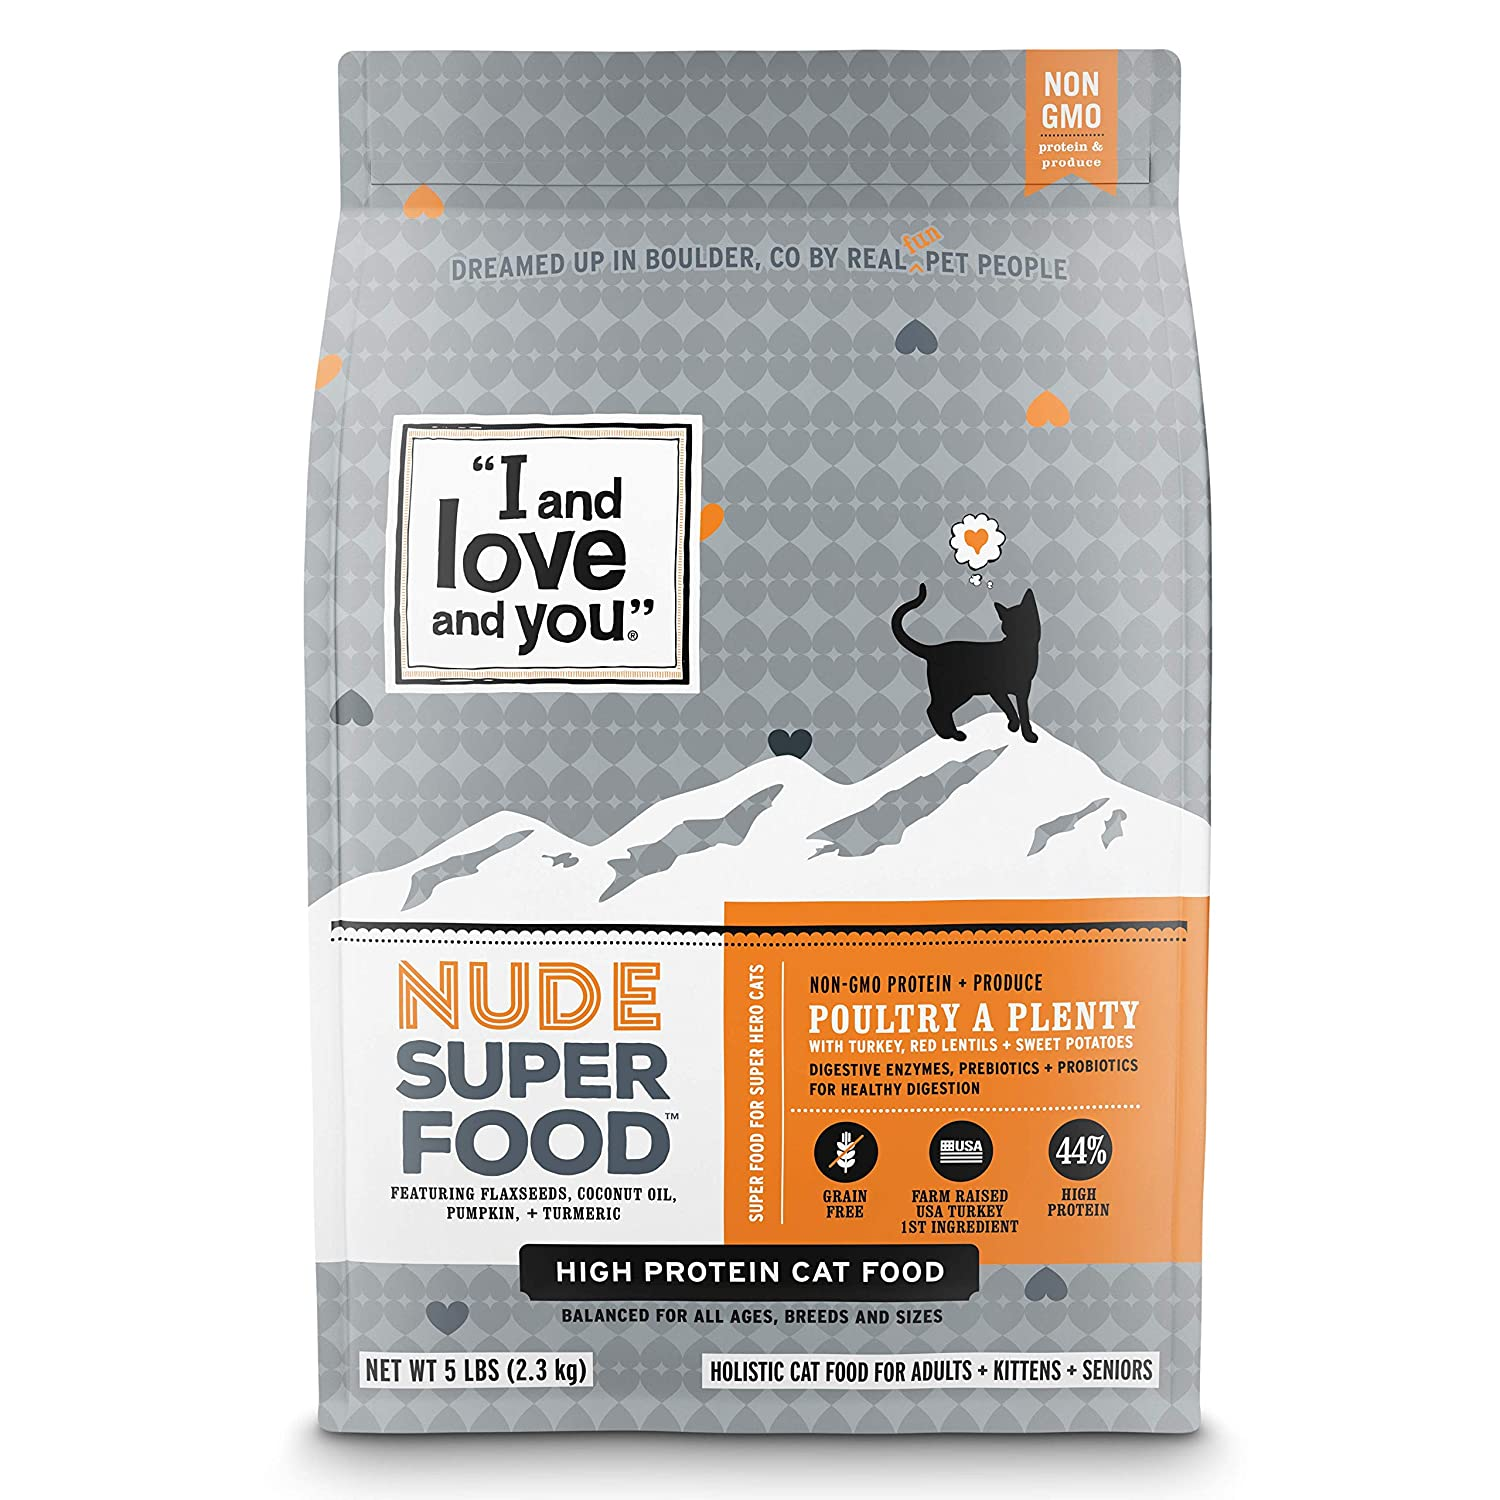 """I and love and you"" Nude Food Poultry A Plenty Grain Free Dry Cat Food"